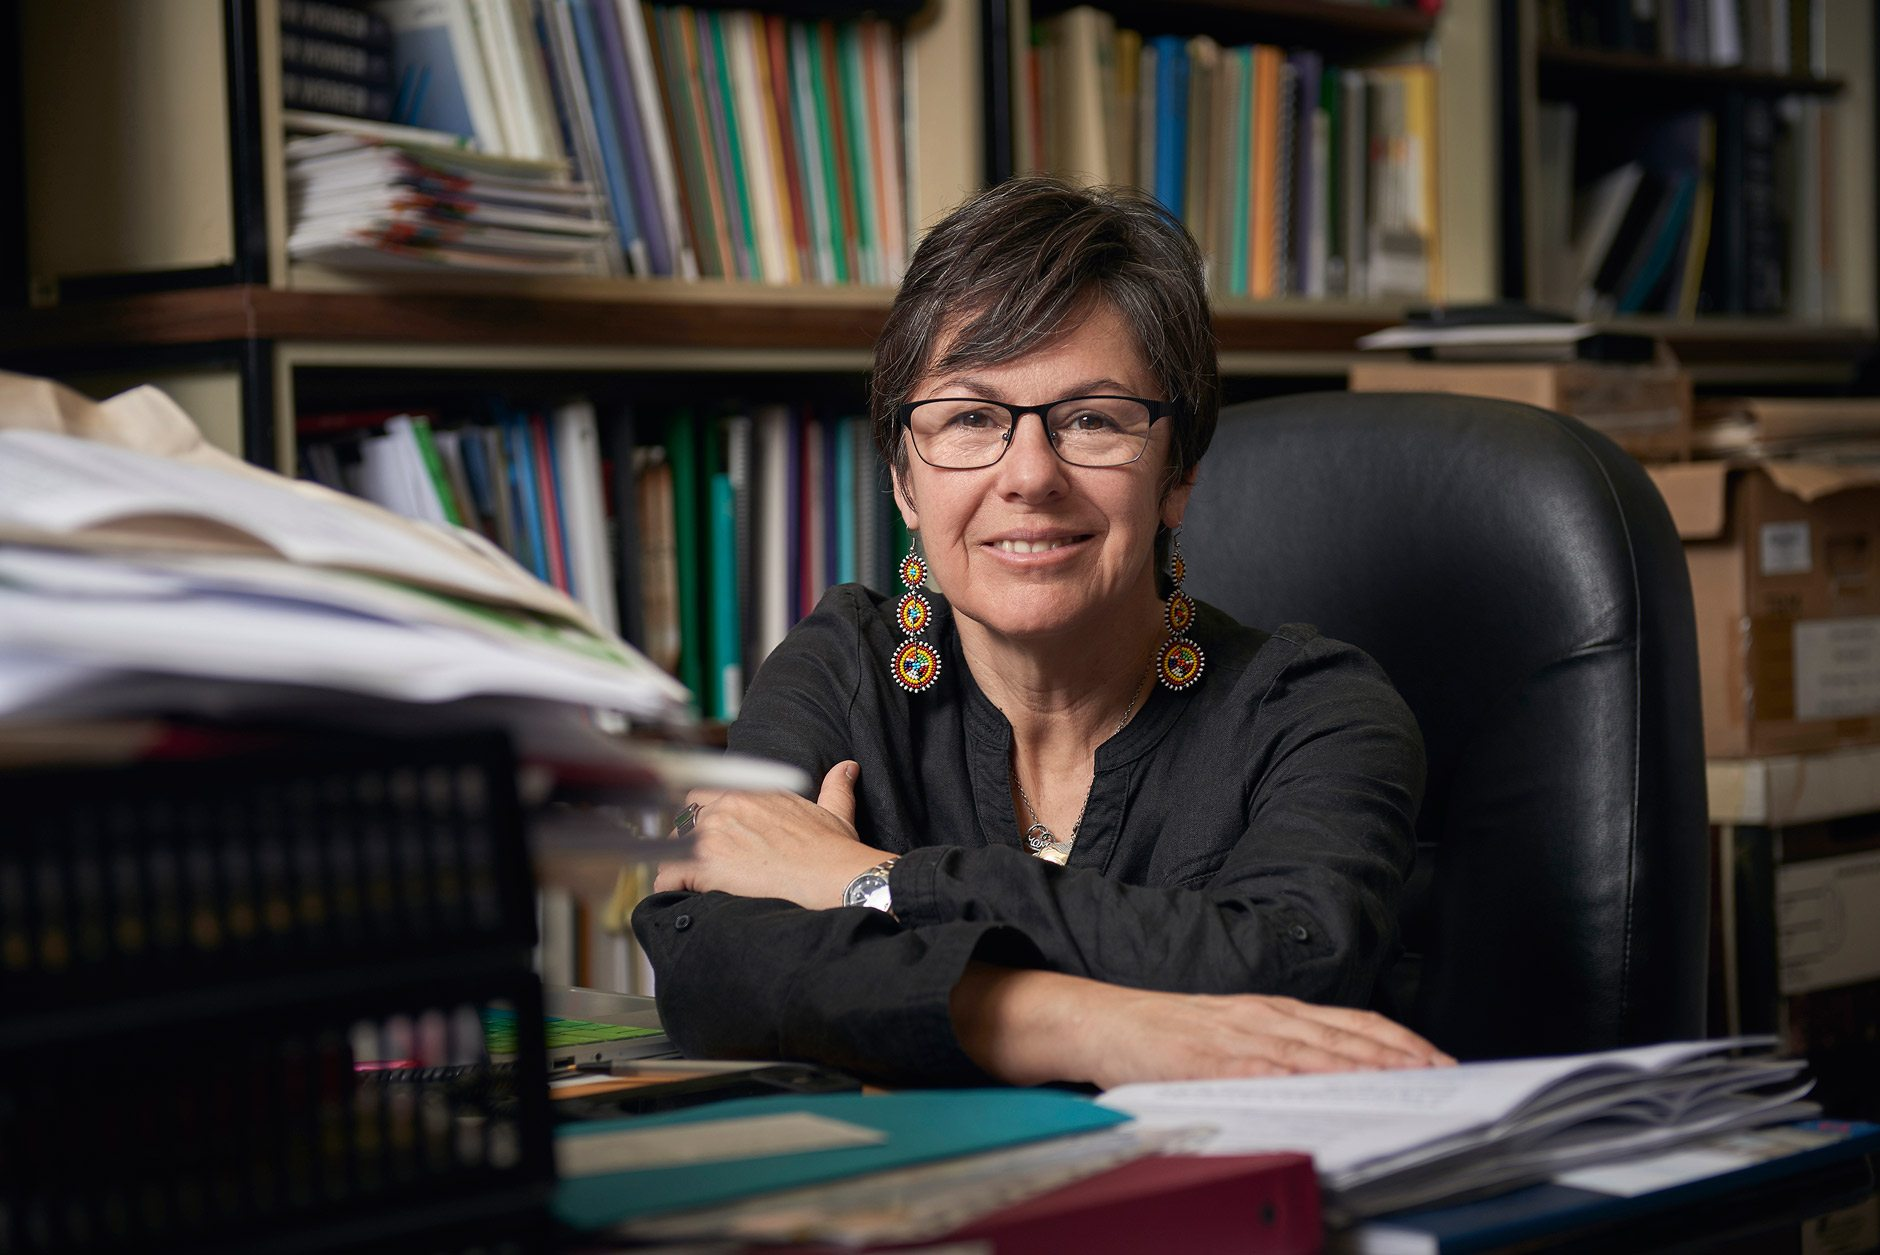 Kim Pate, a newly appointed senator, was interviewed in September in her office at the Canadian Fry society in Ottawa. Photo: Jessica Deeks